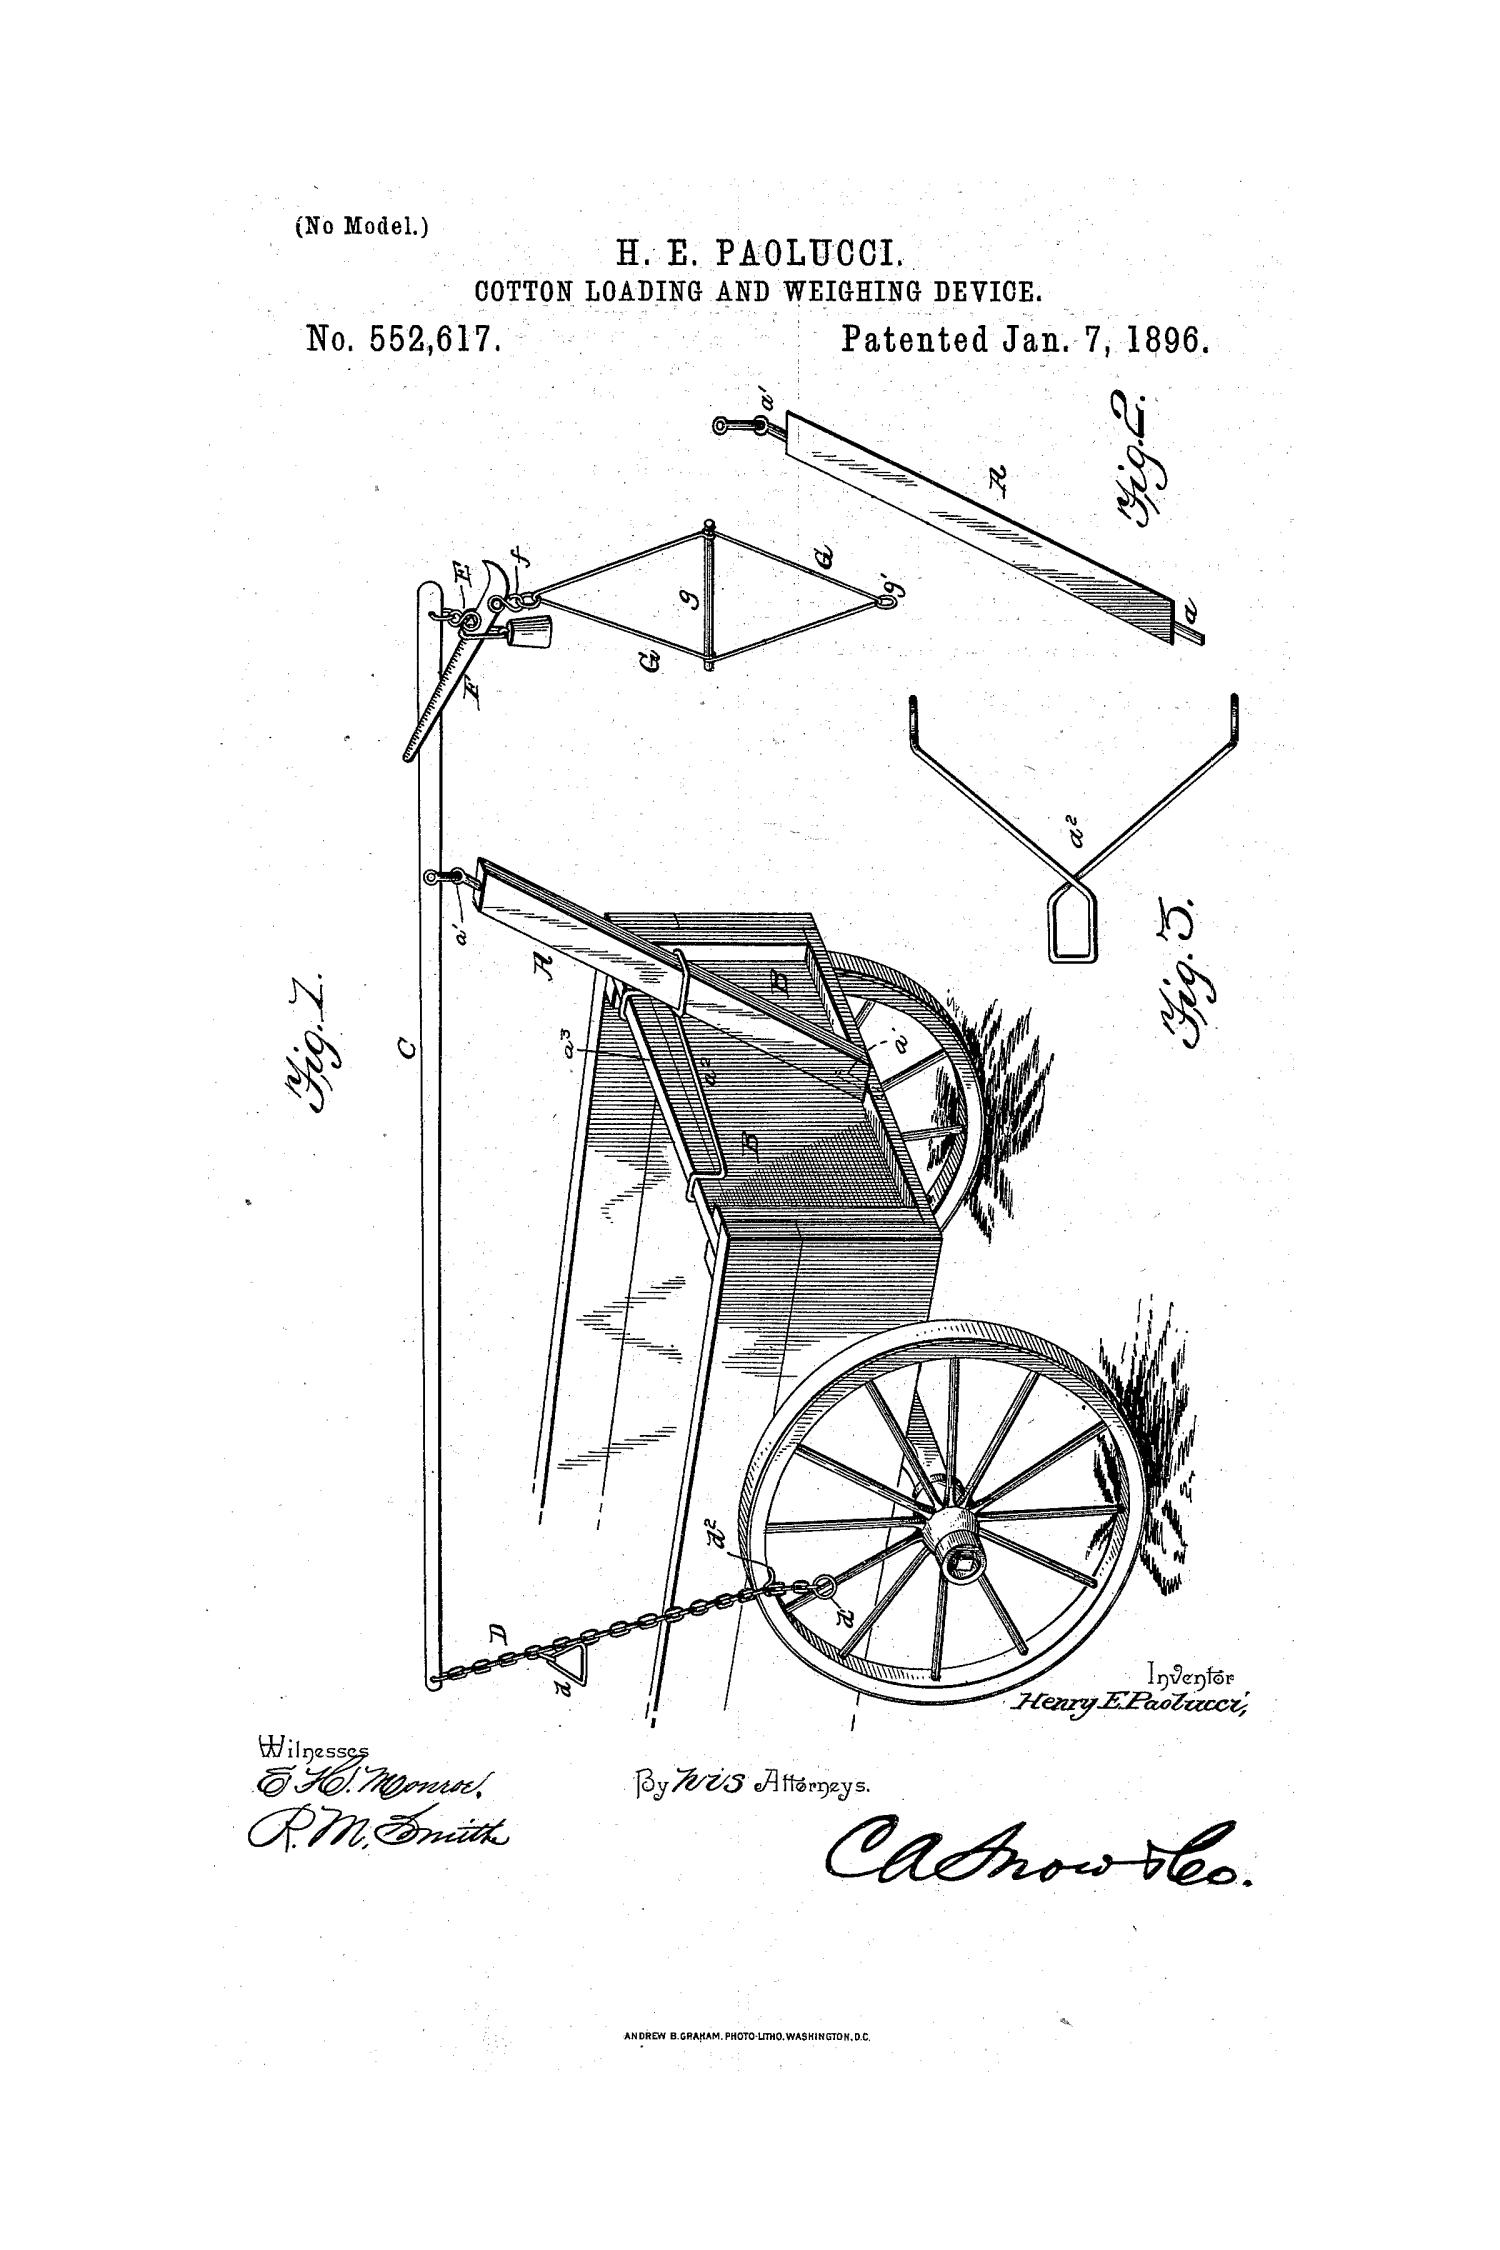 Cotton Loading And Weighing Device Diagram Hays County